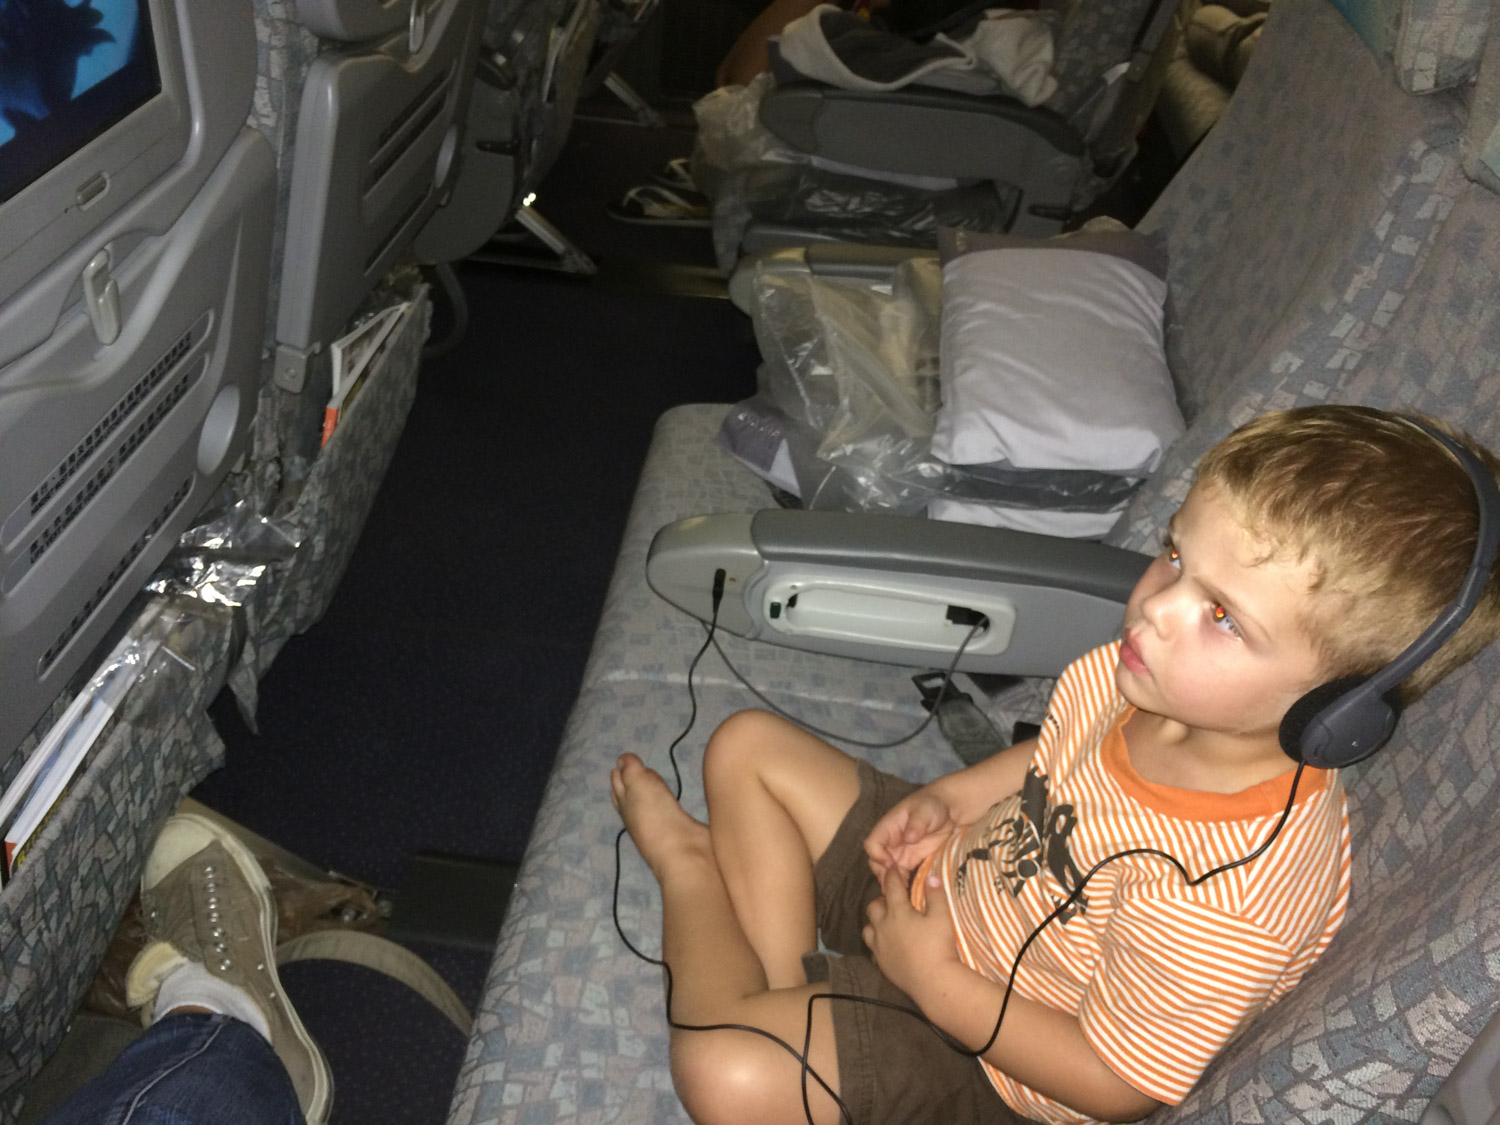 Caleb was pretty excited to watch Frozen on the plane. We were so fortunate to have a whole row to ourselves too!